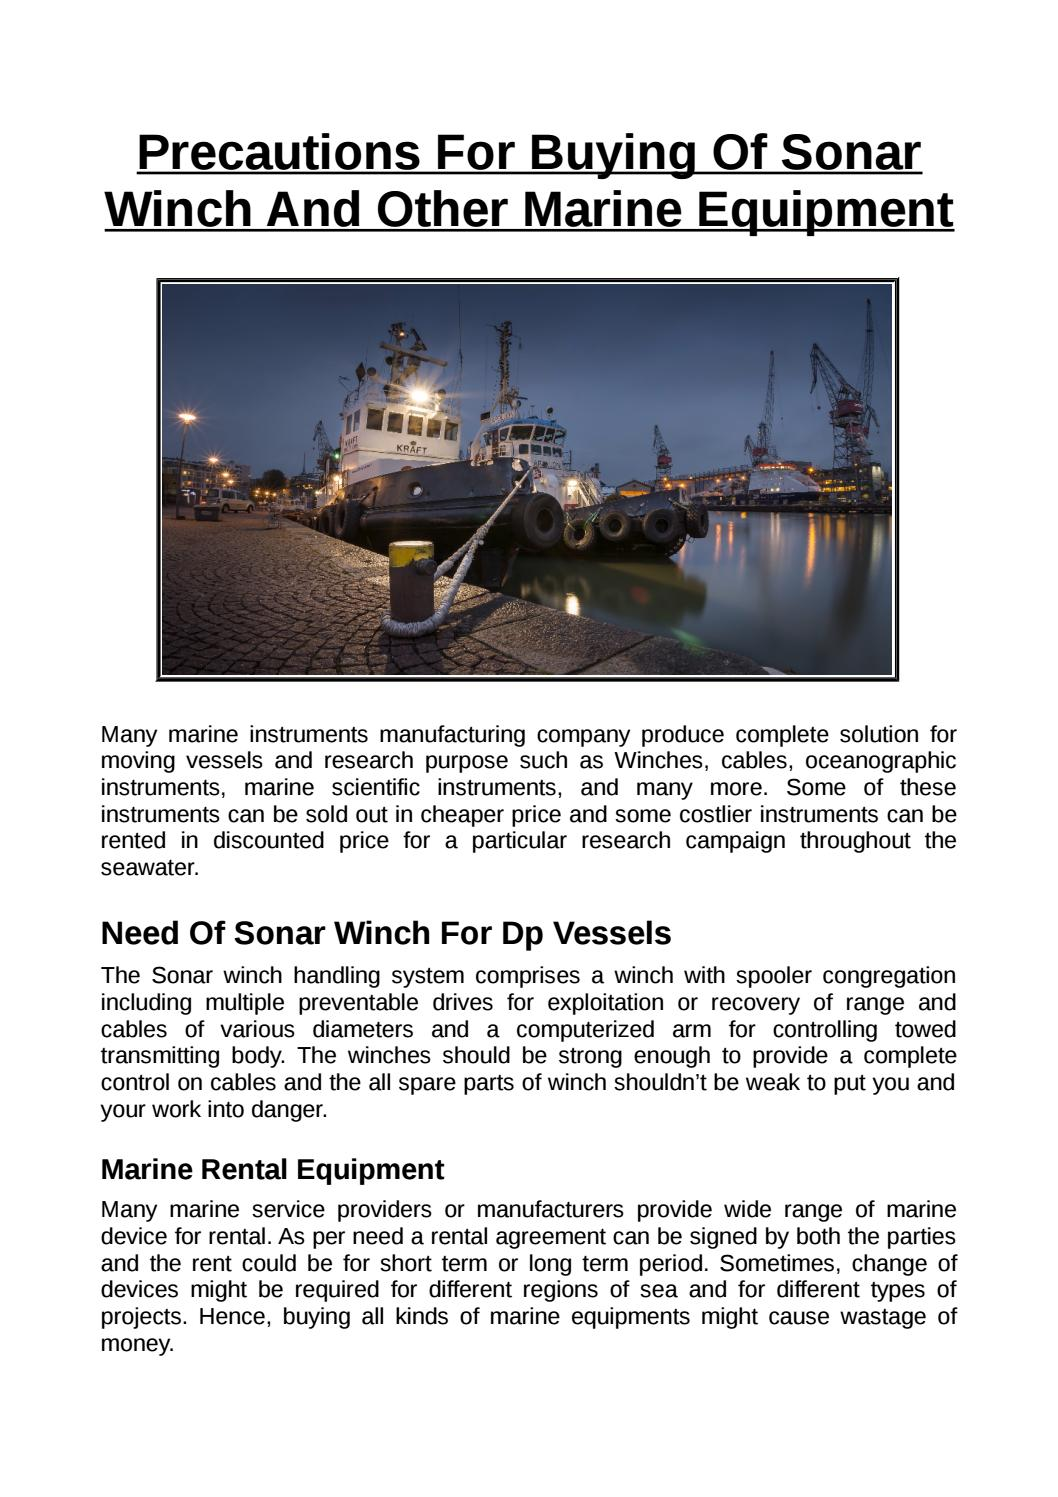 Precautions For Buying Of Sonar Winch And Other Marine